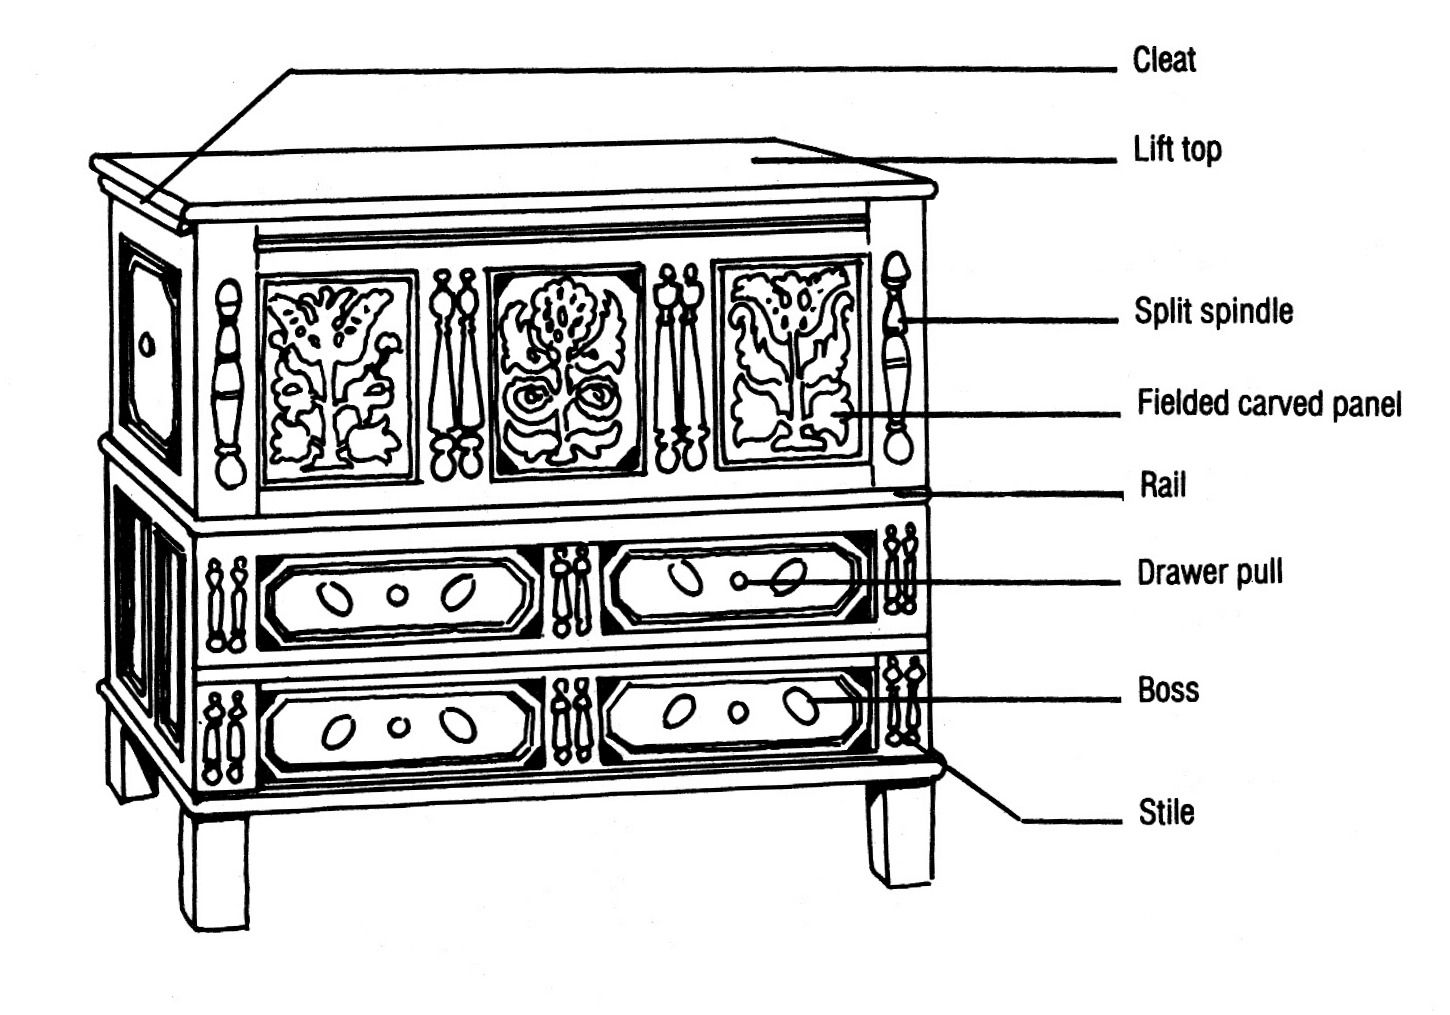 Diagram Of Wethersfield Type Chest With Drawers   1675   1700,  Wethersfield, CT.